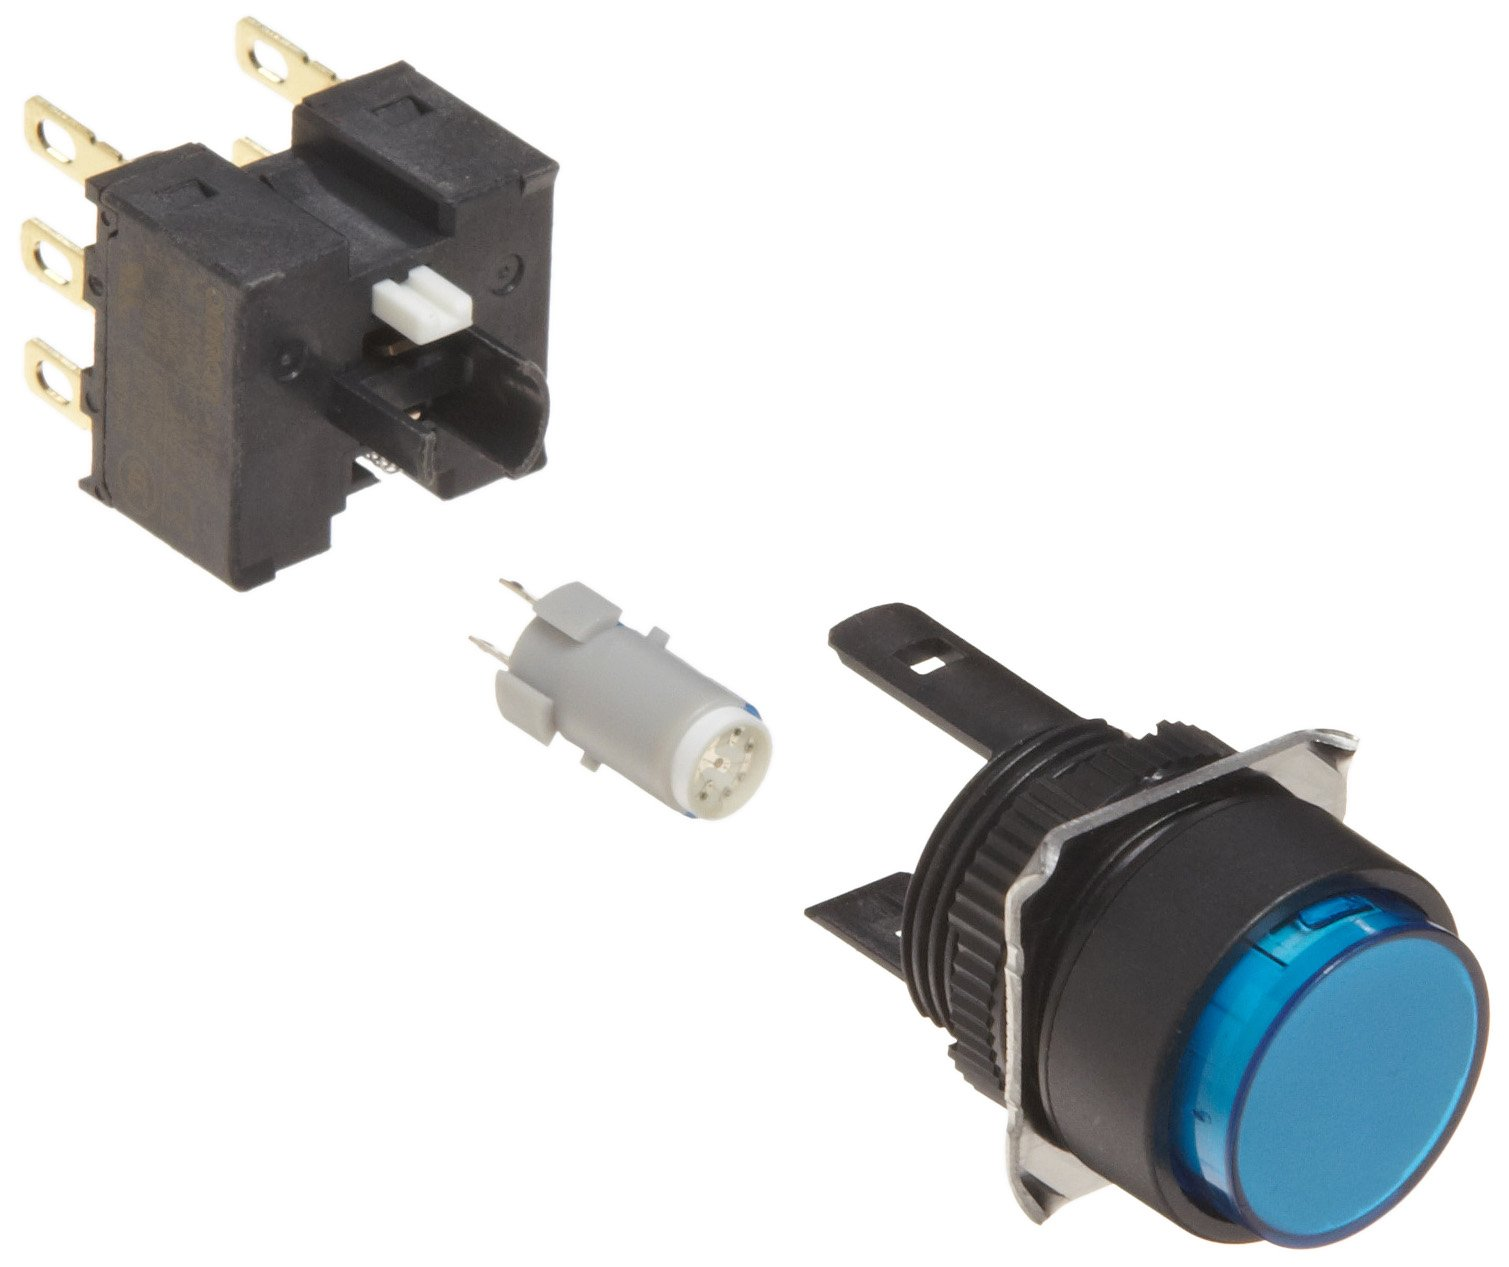 Omron A165L-TAM-24D-2 Projection Type Pushbutton and Switch, Solder Terminal, IP65 Oil-Resistant, 16mm Mounting Aperture, LED Lighted, Momentary Operation, Round, Blue, 24 VDC Rated Voltage, Double Pole Double Throw Contacts